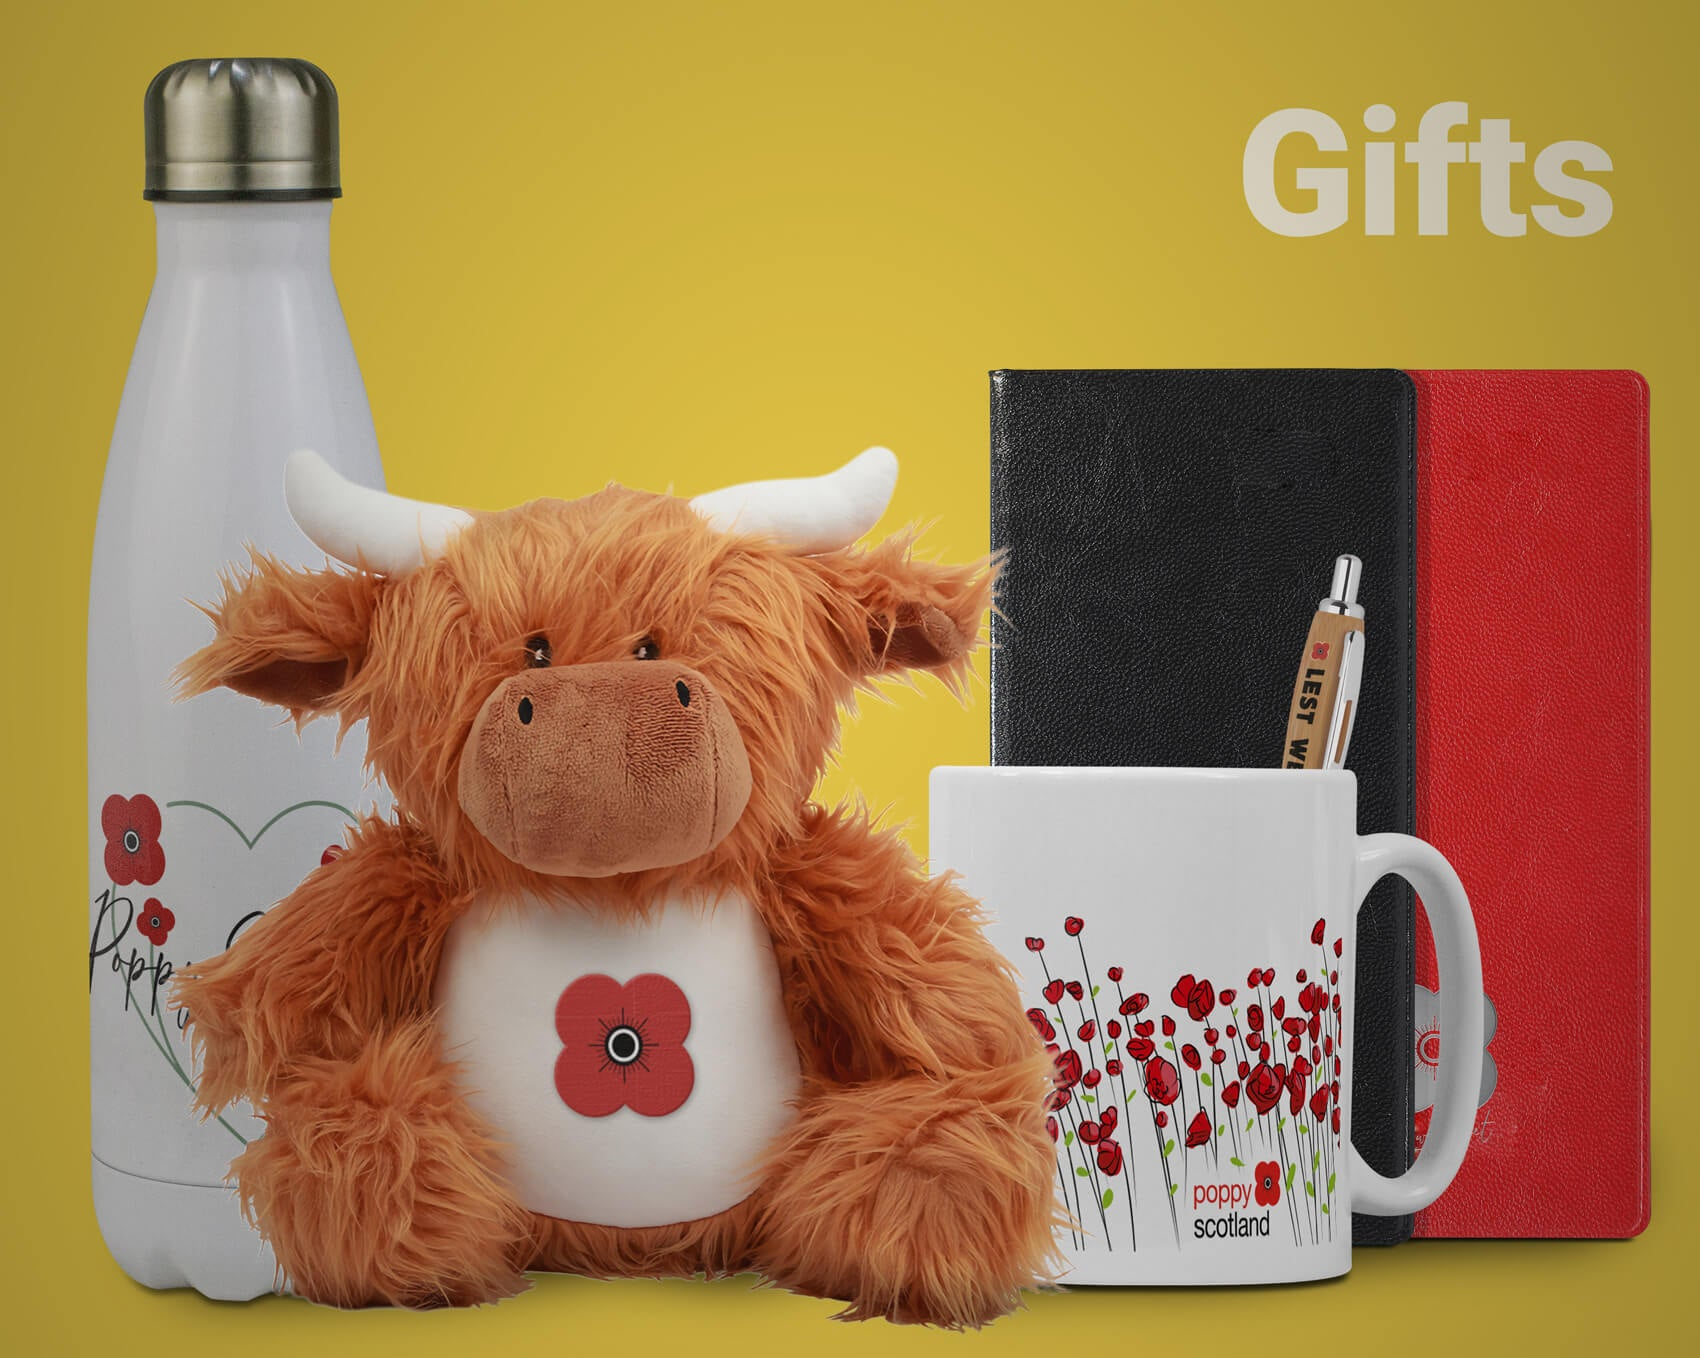 The Poppyscotland Gift Collection